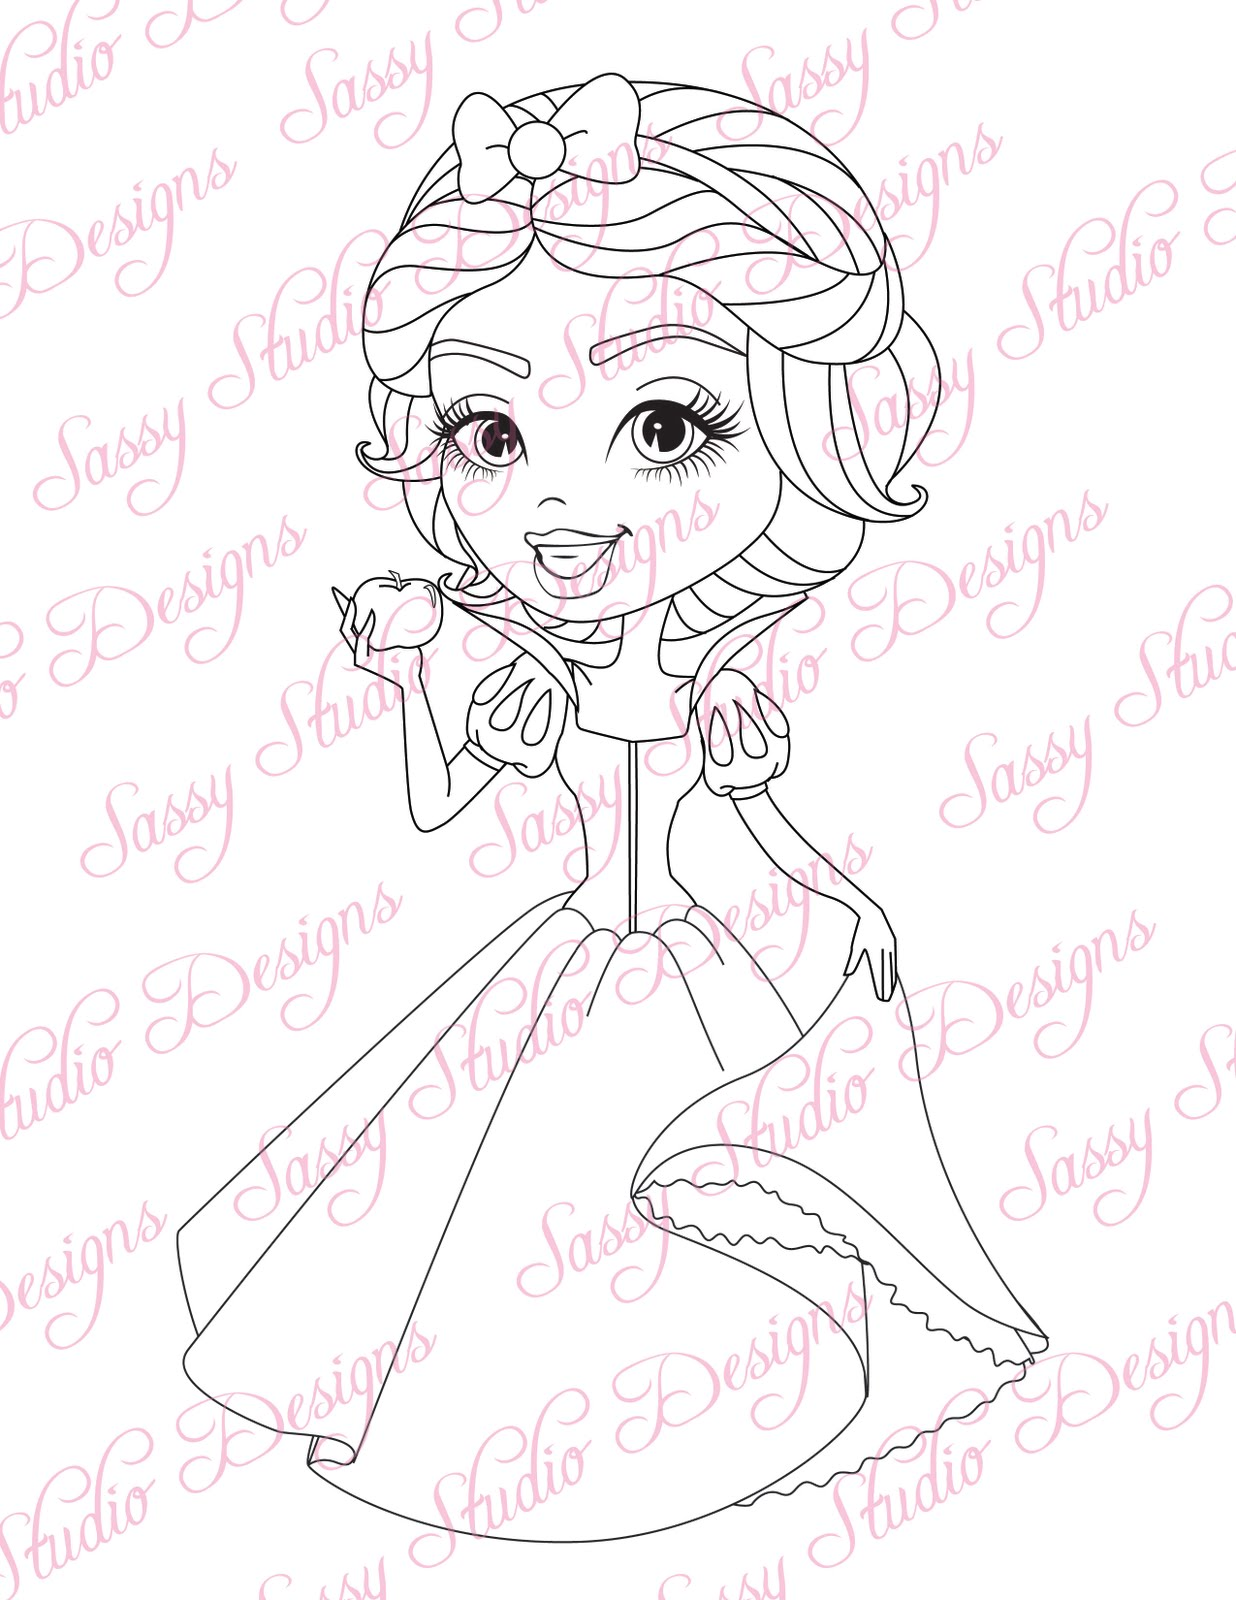 Baby Snow White Drawing